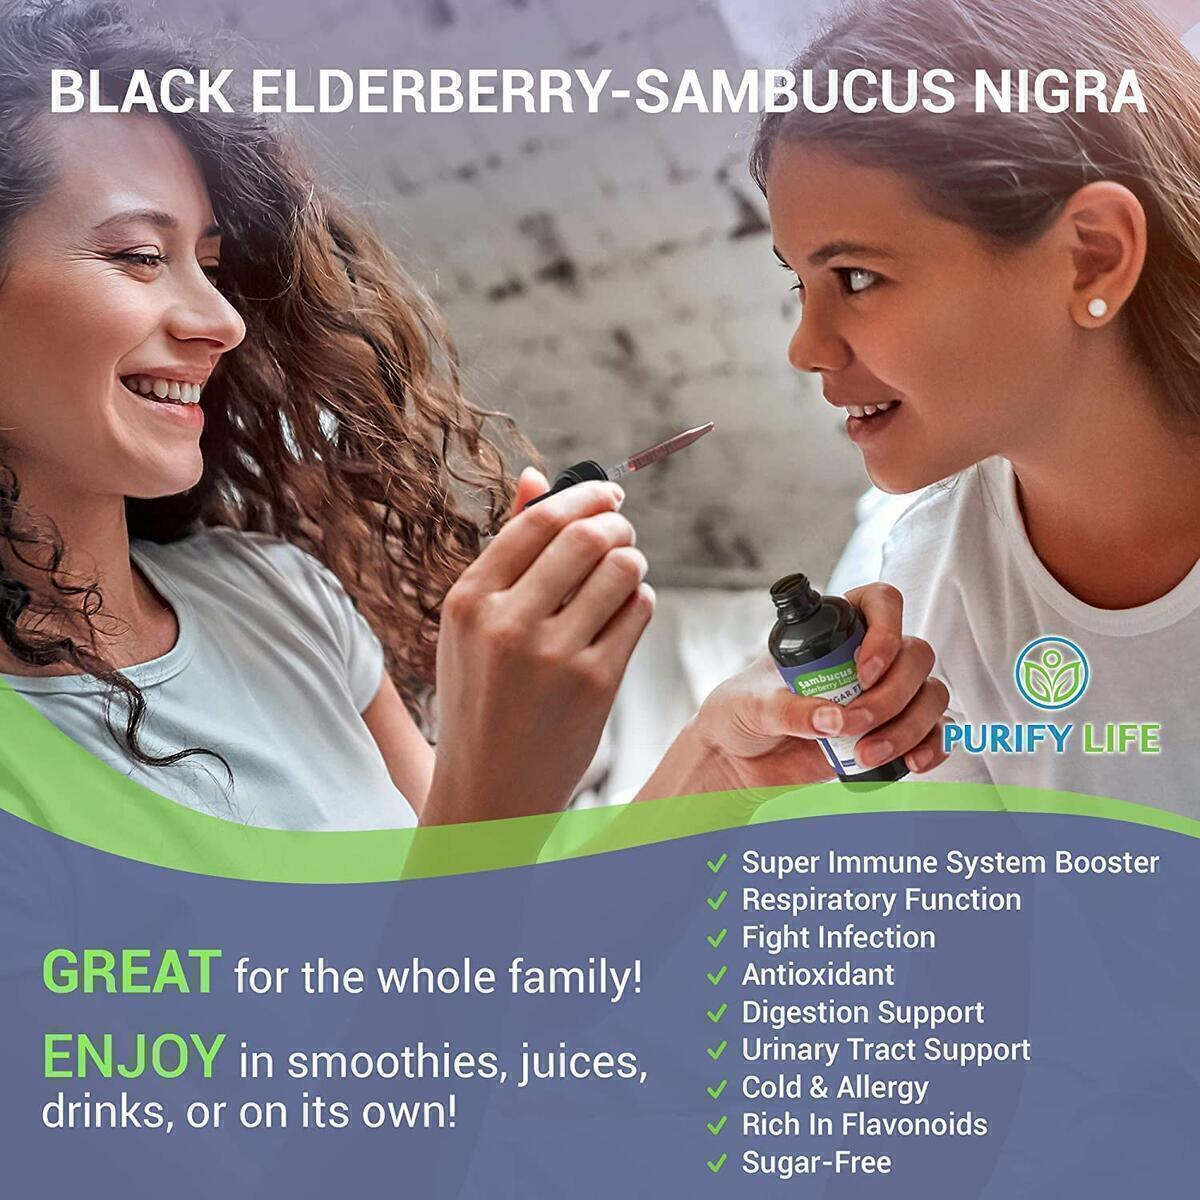 Organic Elderberry Syrup for Adults & Kids (Large Tincture - 6000mg) Sugar-Free Immune Support - Vegan Sambucus Liquid Extract - Antioxidant Juice Supplement Replaces Gummies, Capsules, & Tablets 2oz